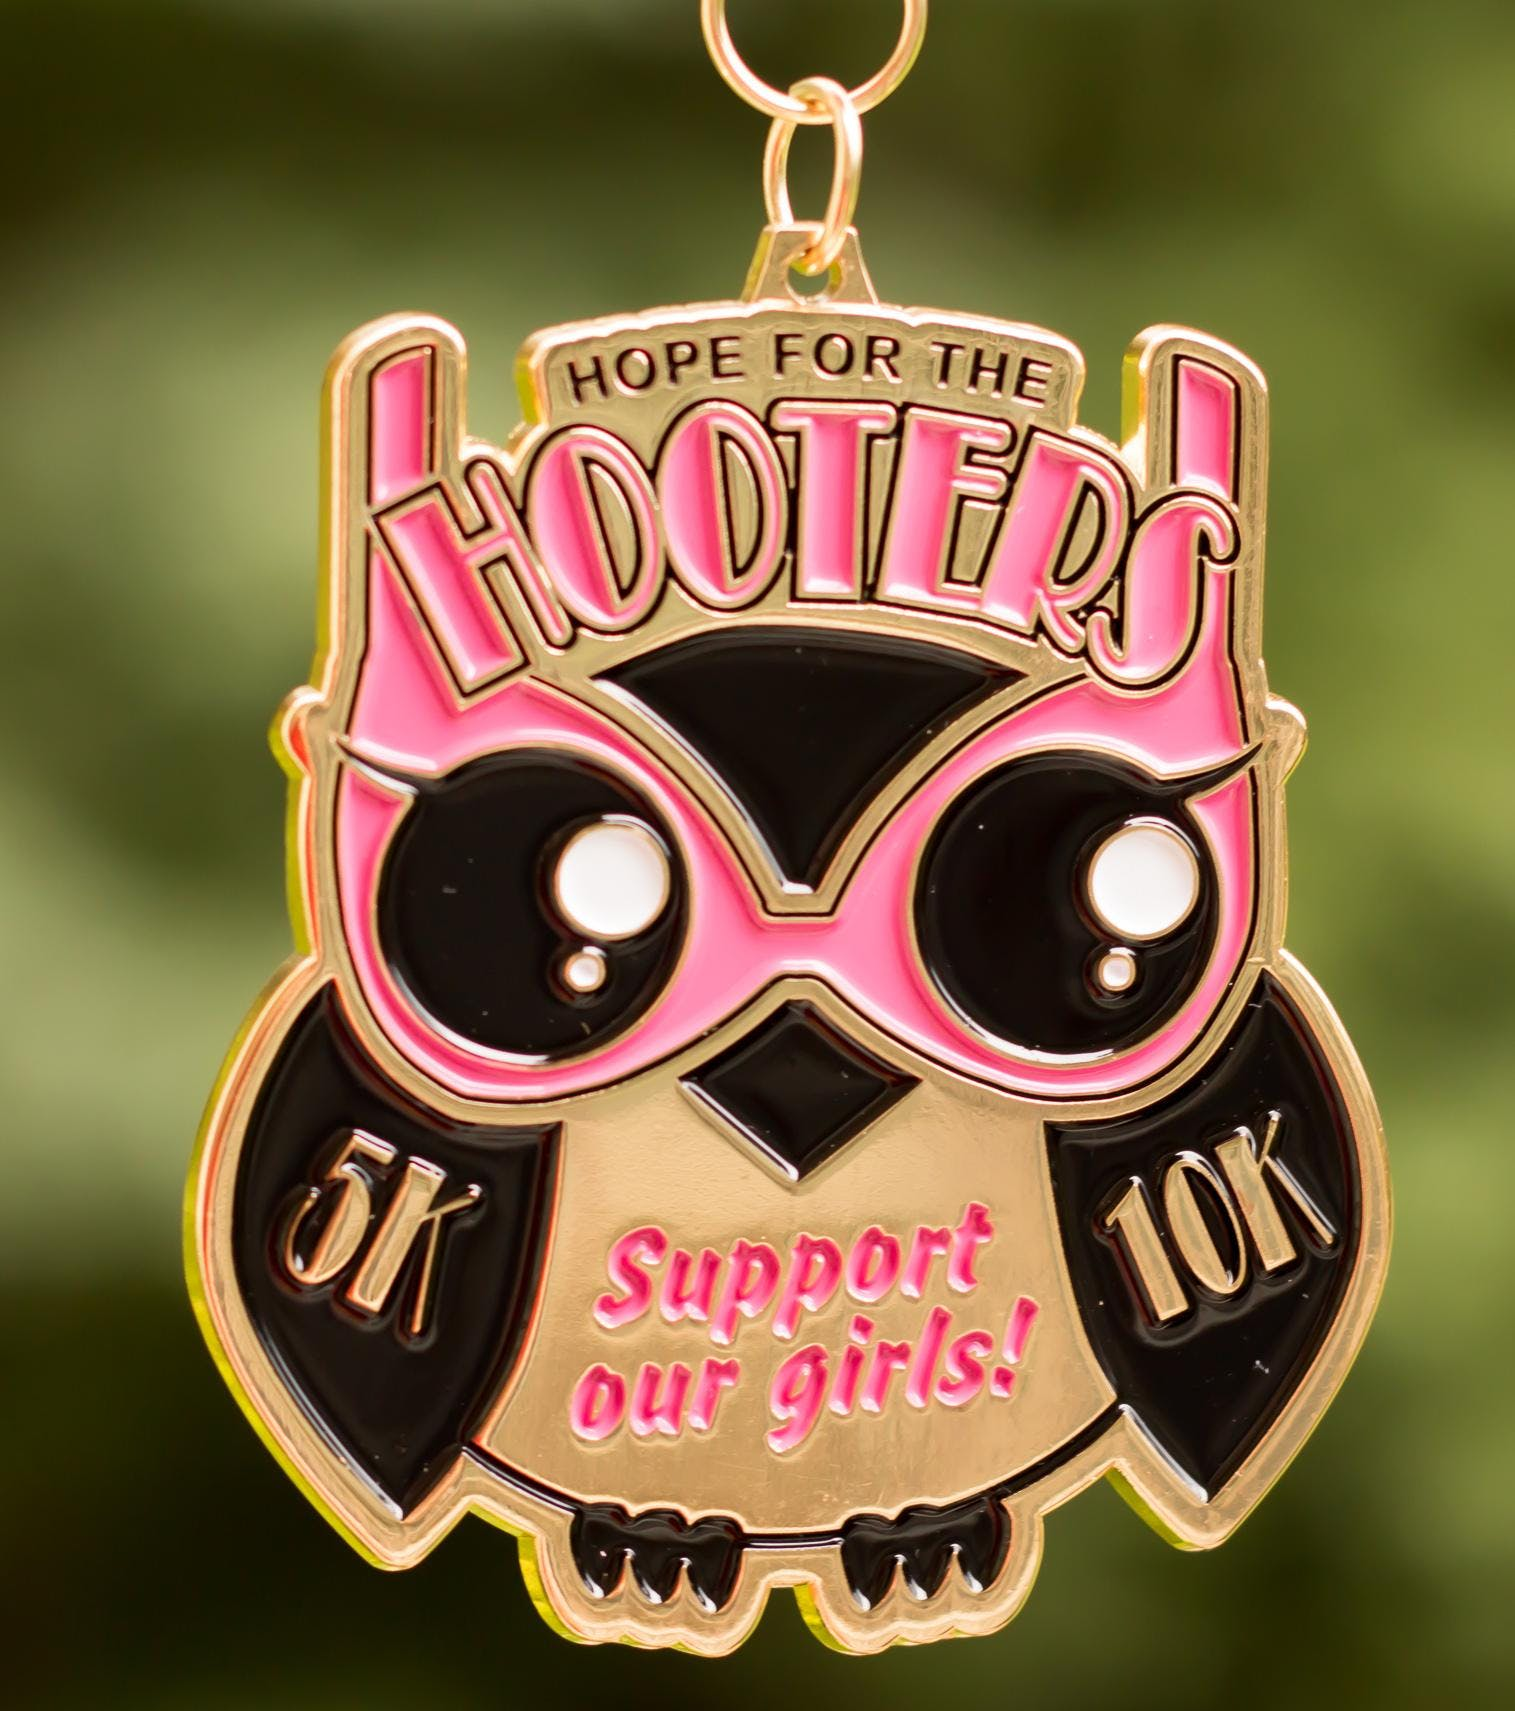 Now Only $10! Support Our Girls: Hope for the Hooters 5K & 10K- Phoenix